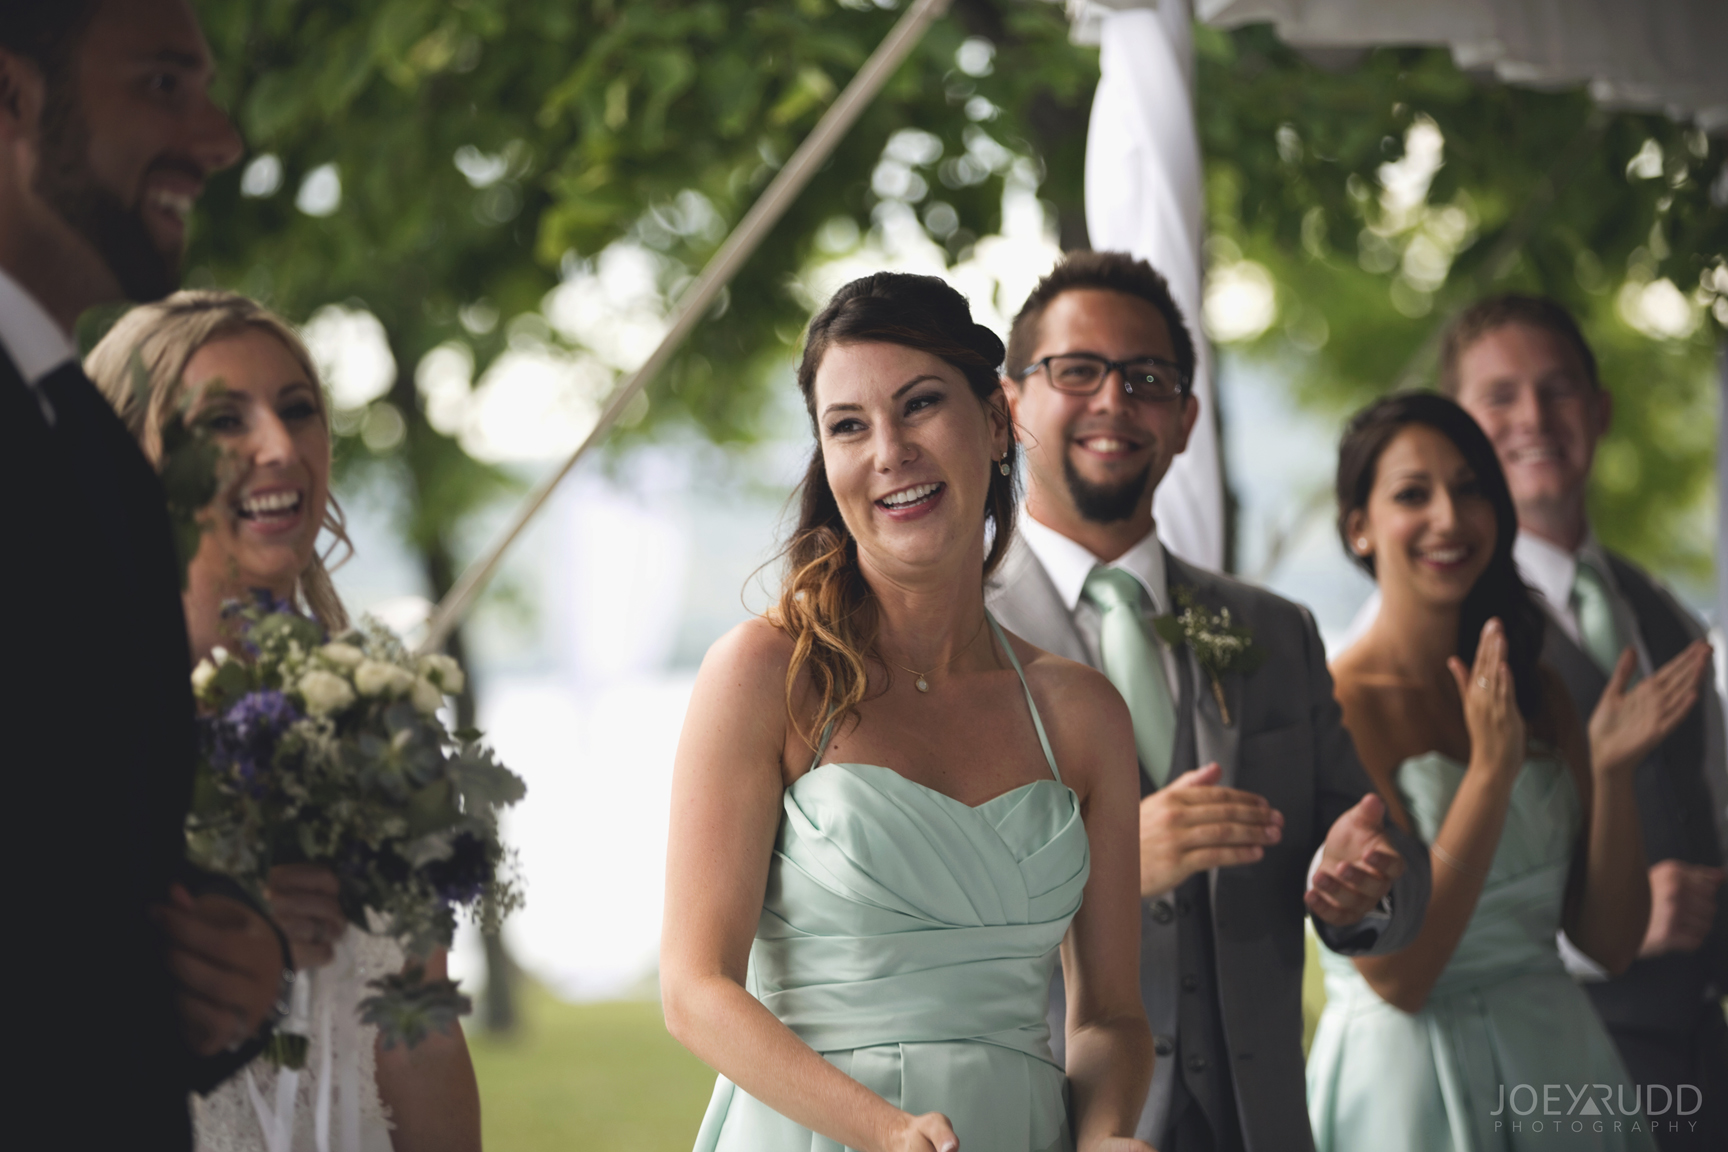 Calabogie Wedding at Barnet Park by Ottawa Wedding Photographer Joey Rudd Photography Candid Reception